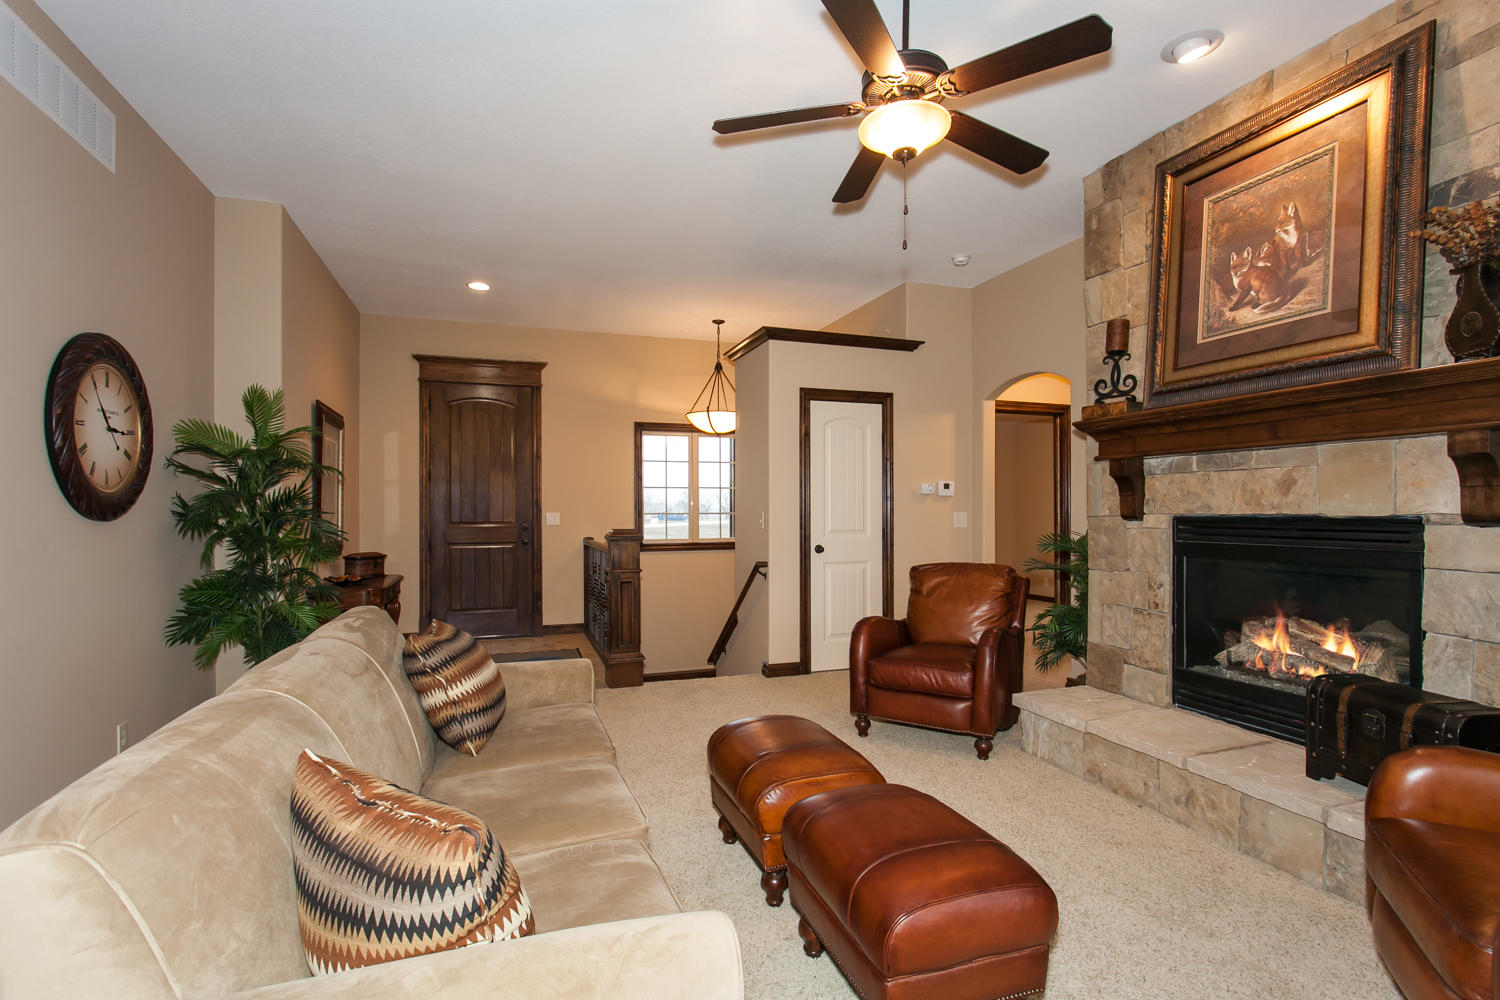 14706 W Valley Hi-large-005-5-Living Room-1500x1000-72dpi.jpg